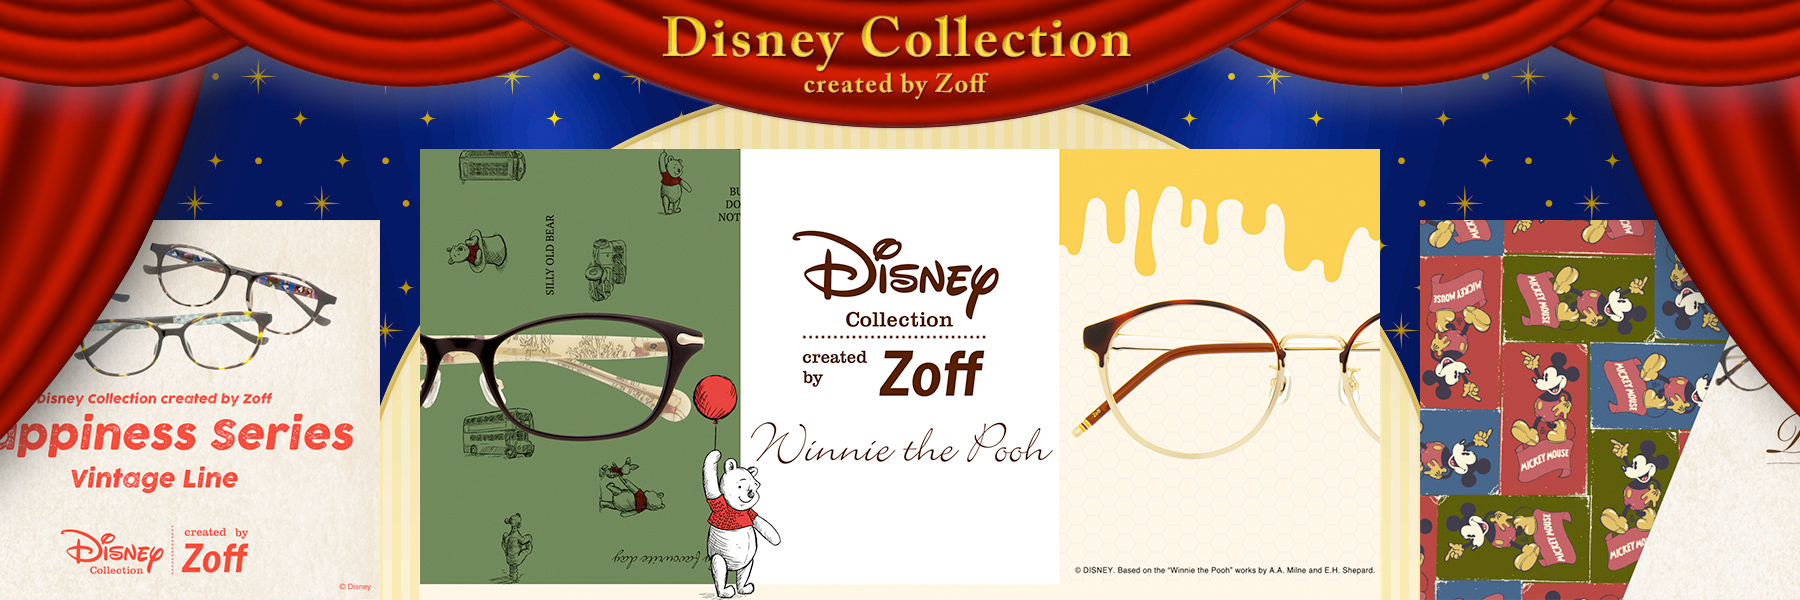 DISNEY Collection created by Zoff (ディズニー・コレクション)